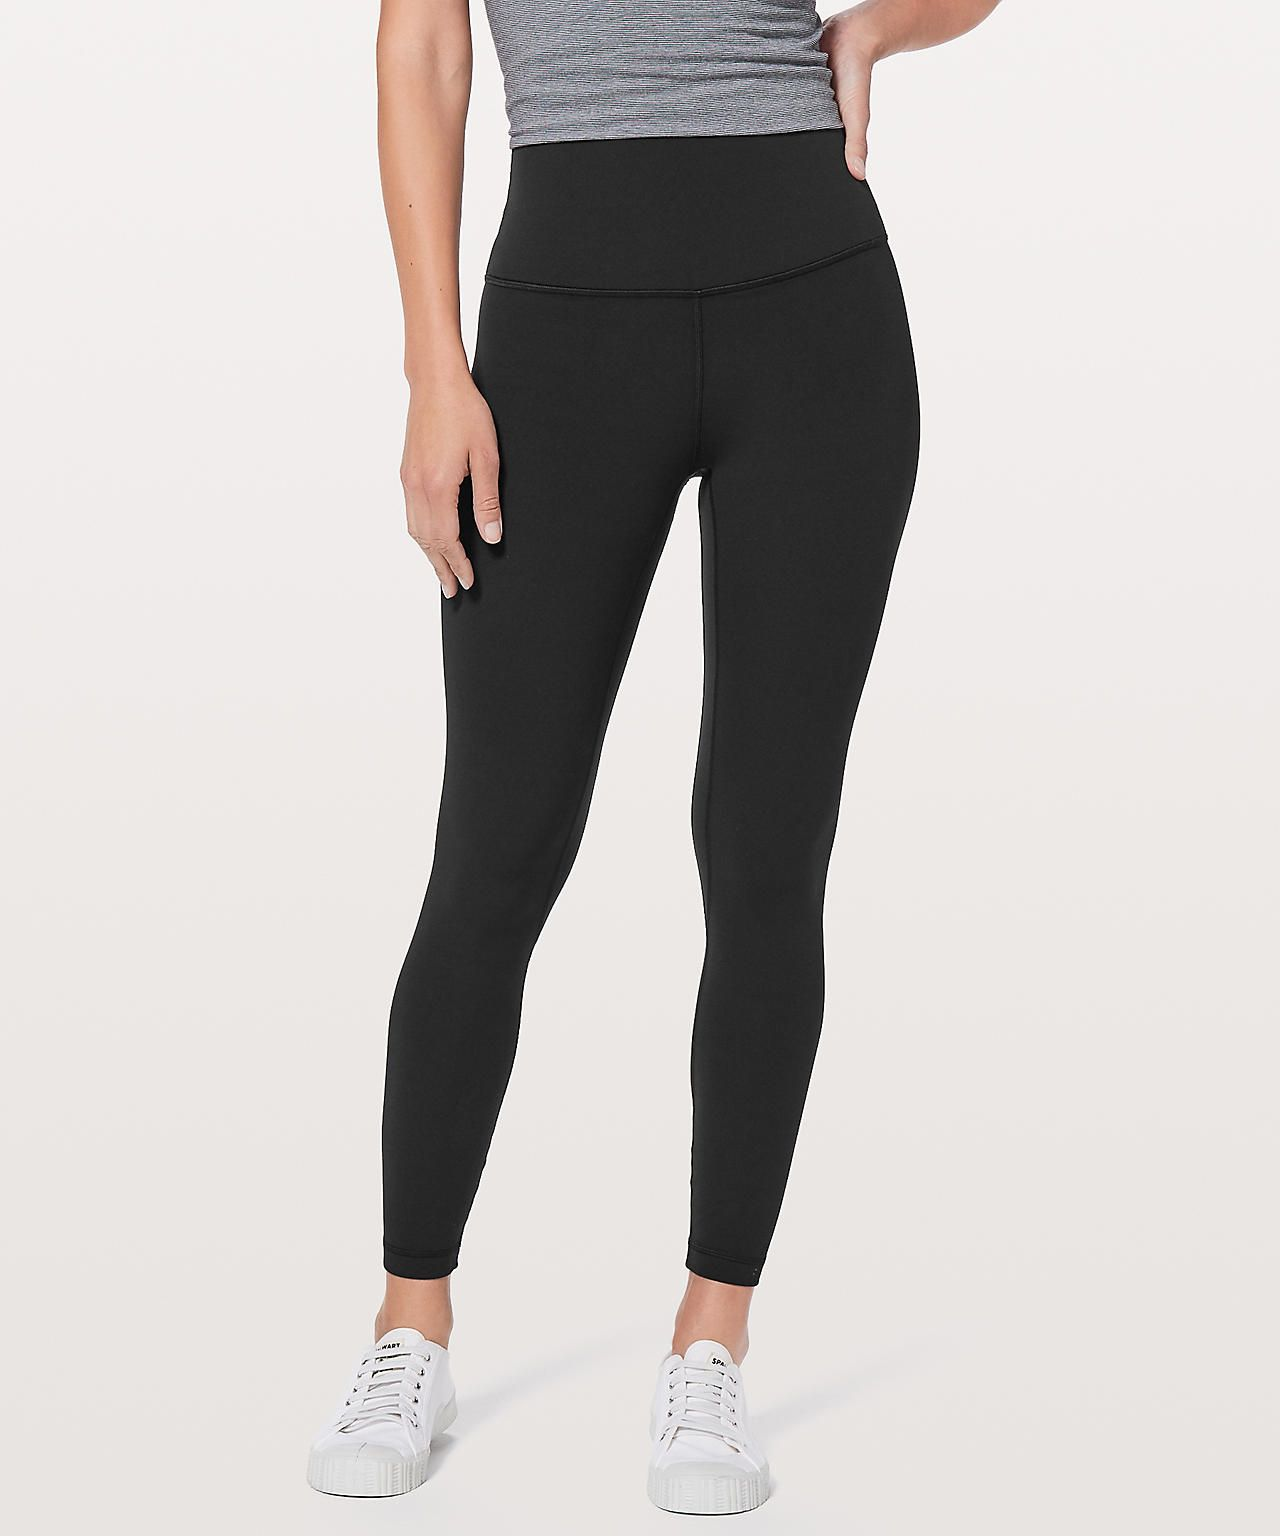 cb1fd7f26a4e8 black size 8 WOULD REALLY LOVE THESE I KNOW THEY'RE EXPENSIVE Lululemon  Leggings High